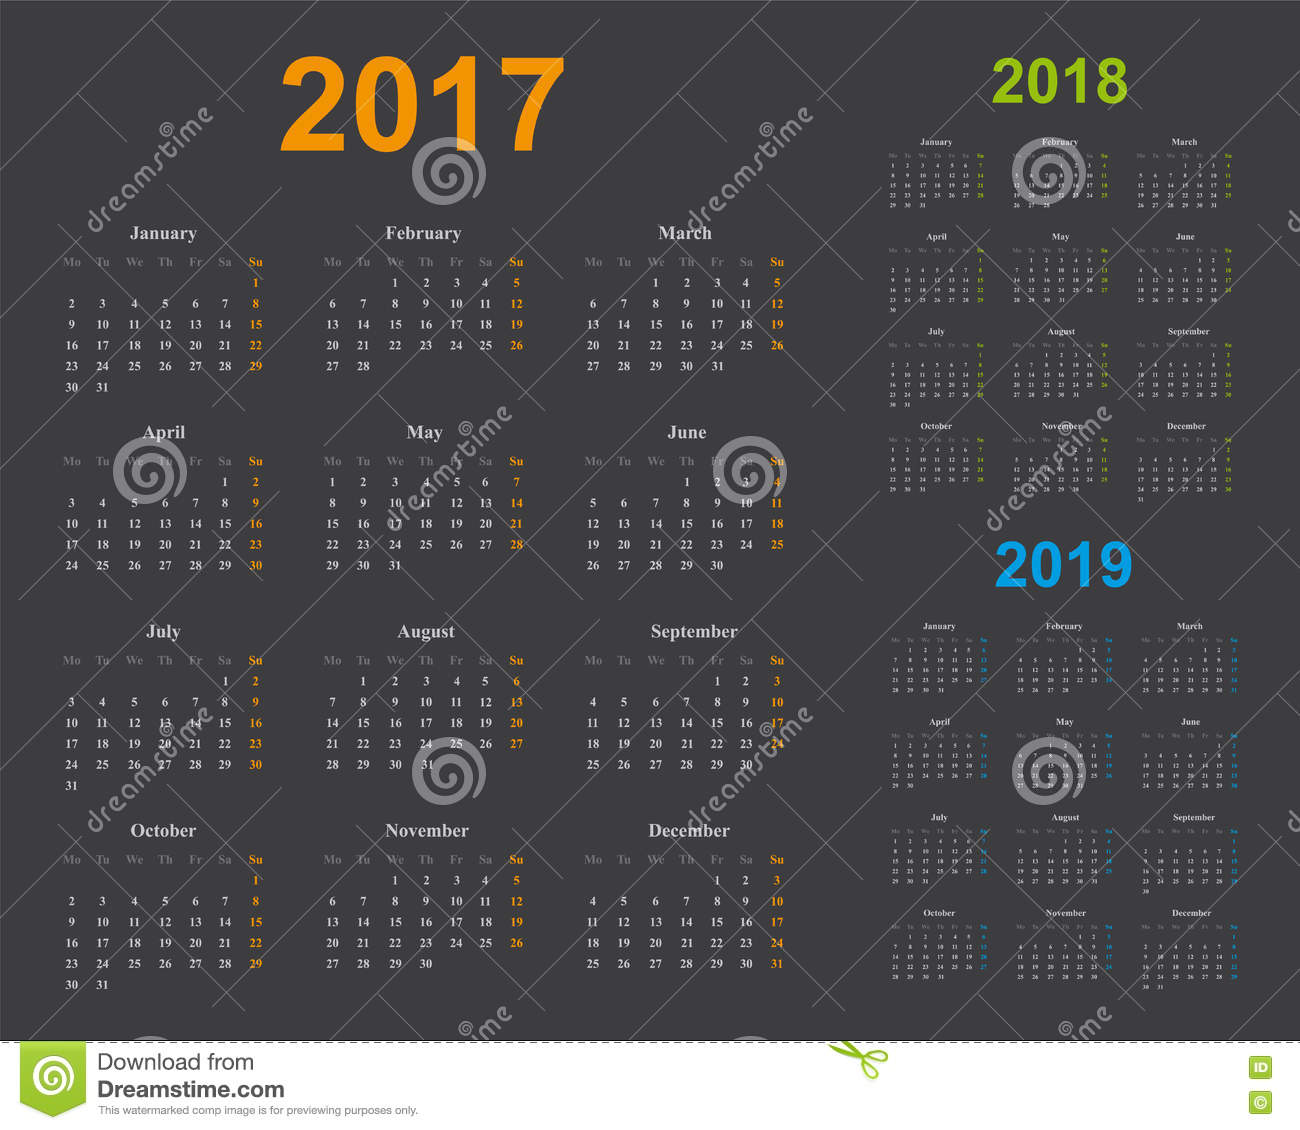 Basic Calendar Template Years 2017 2018 2019 Gray Background